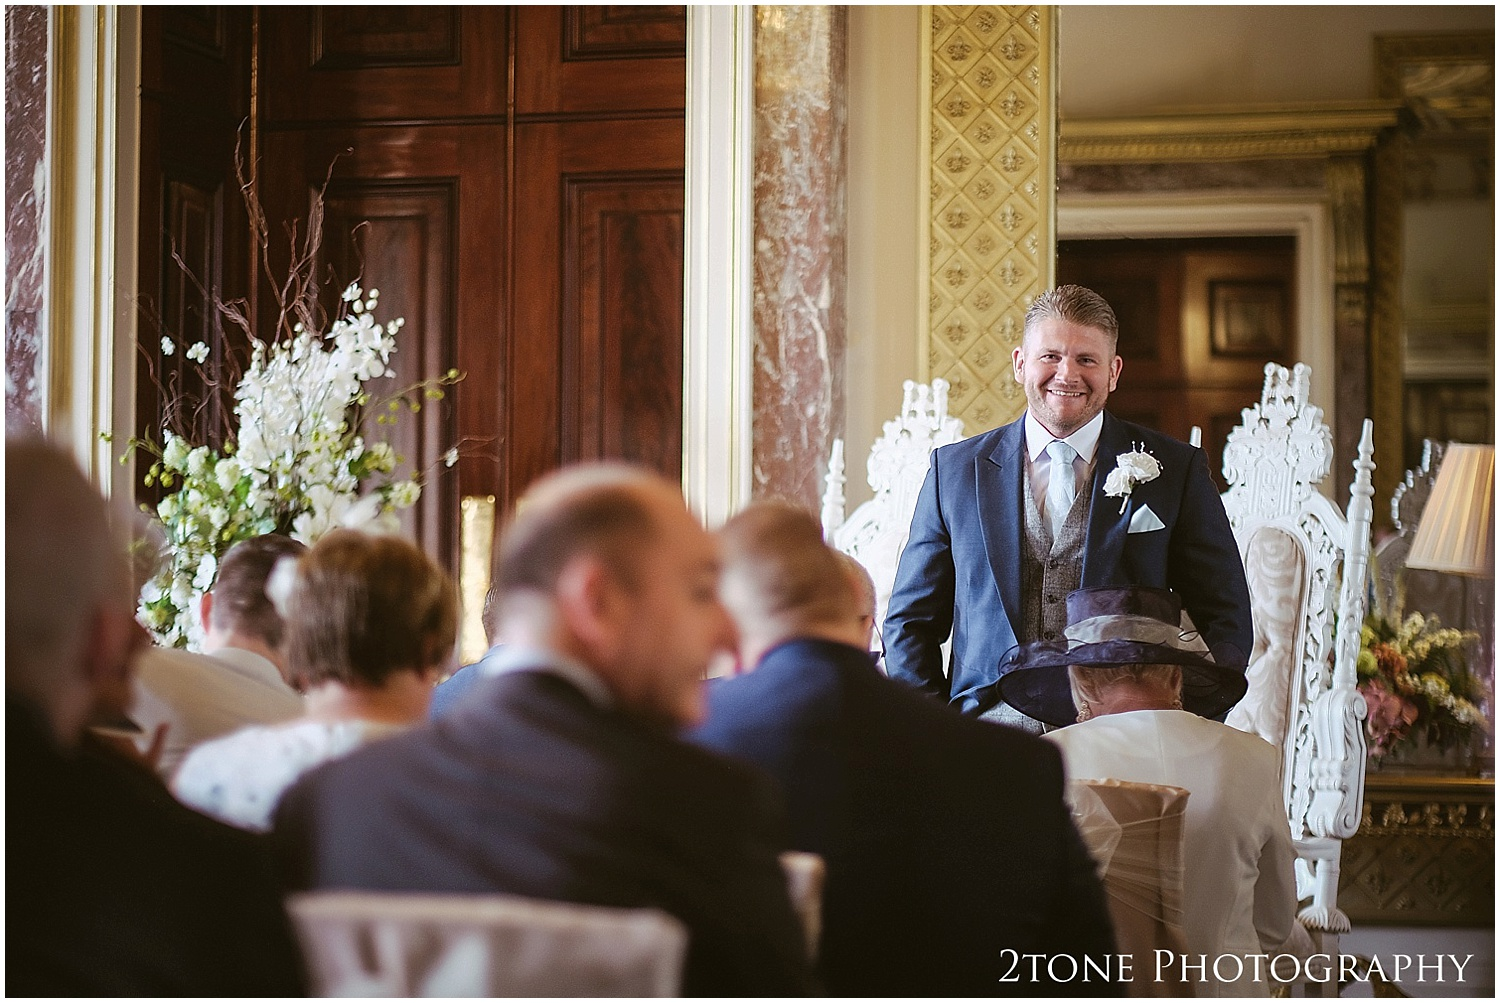 Wynyard Hall wedding by www.2tonephotography.co.uk 033.jpg